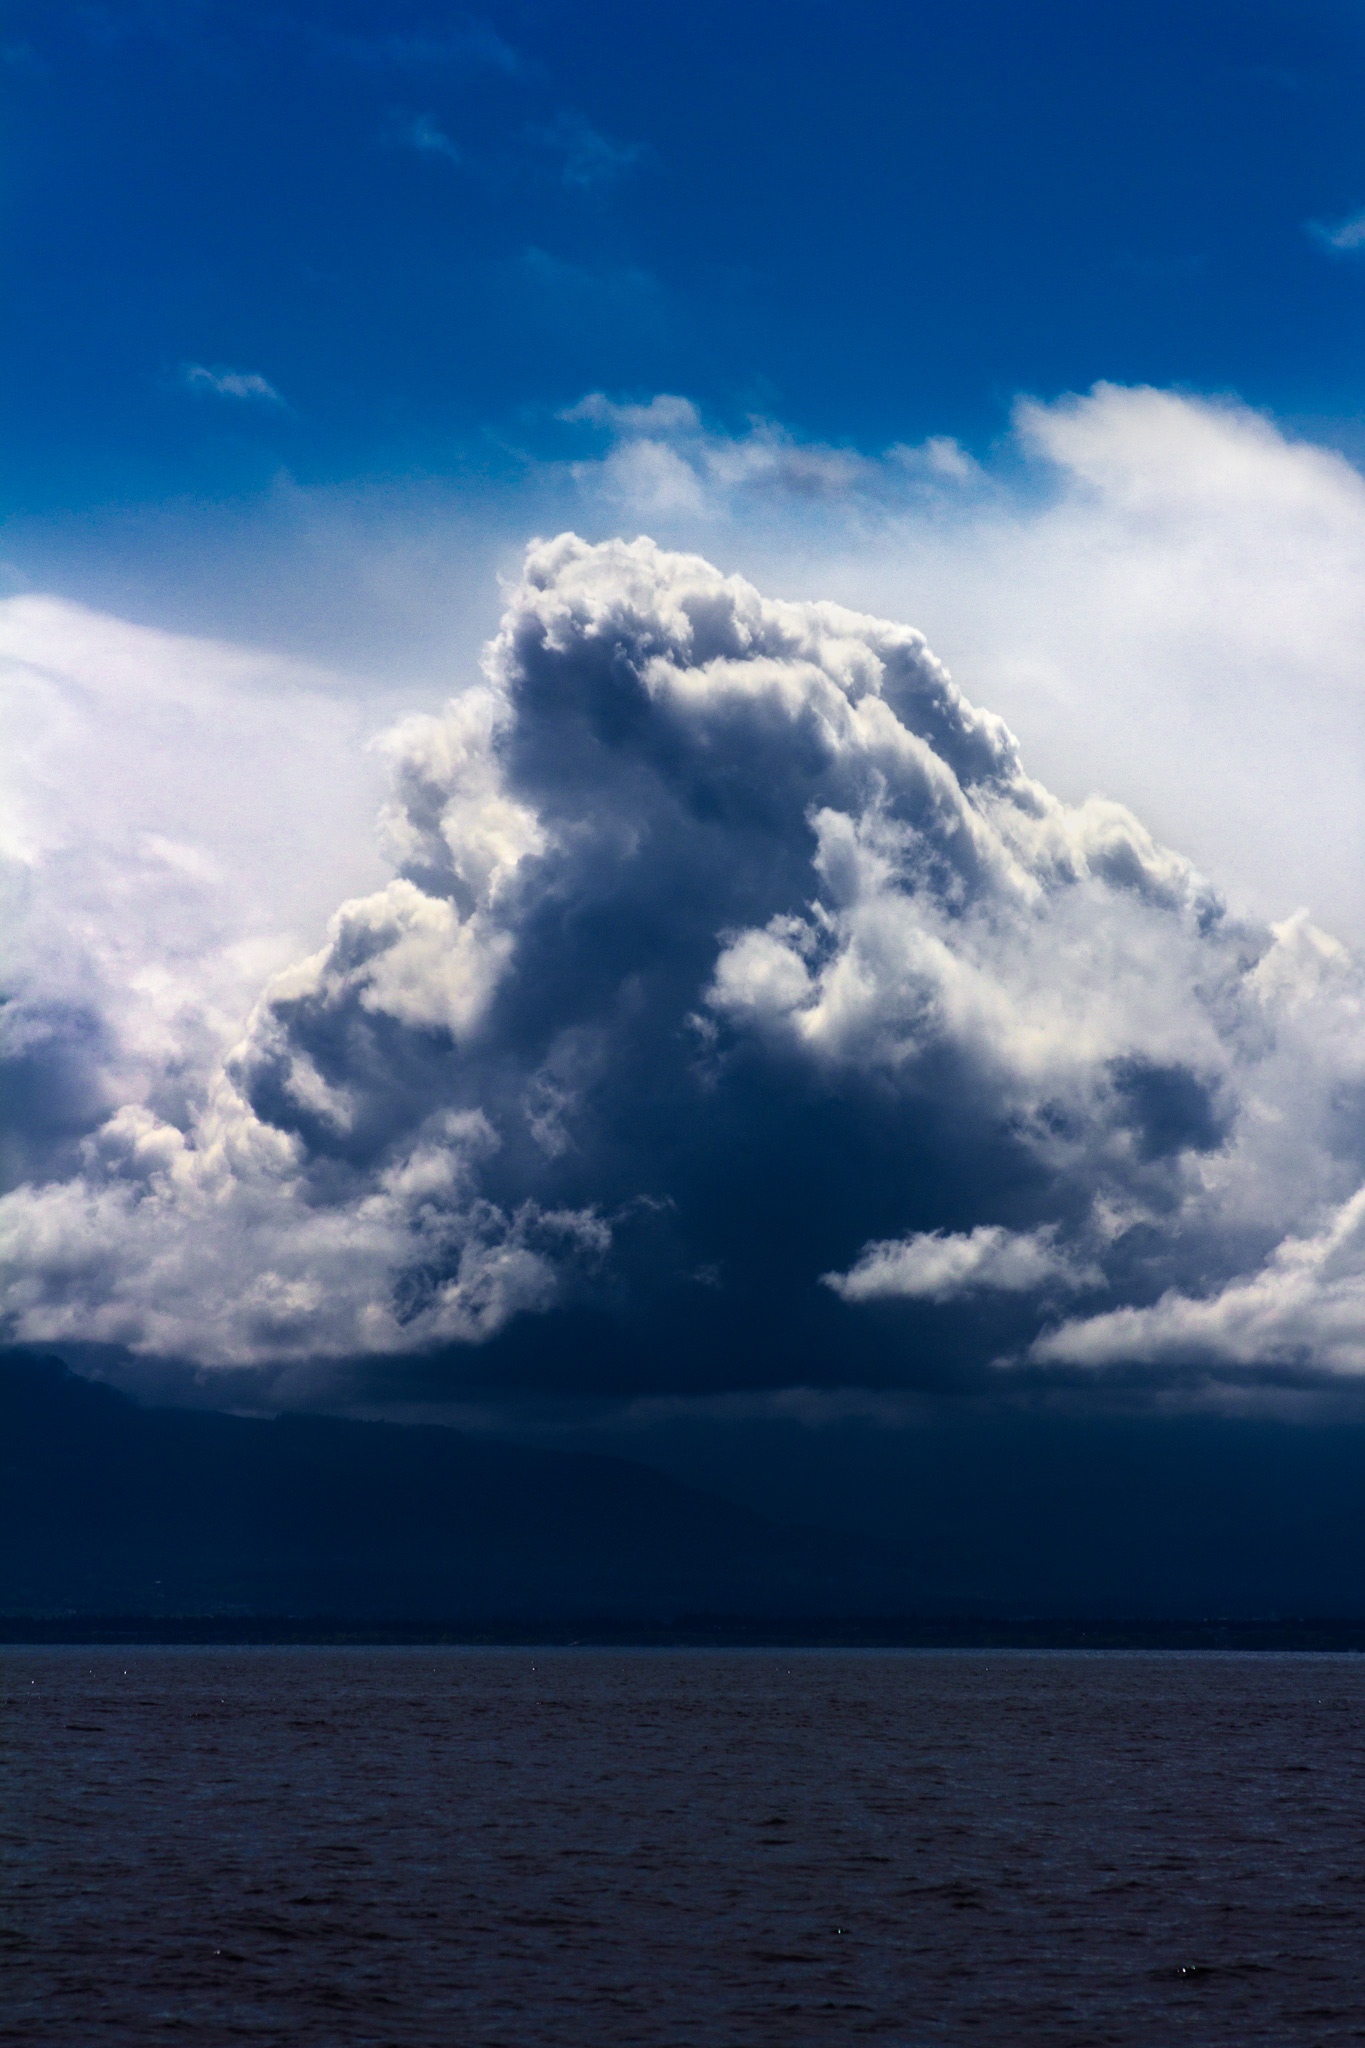 Clouds-over-Water.jpg